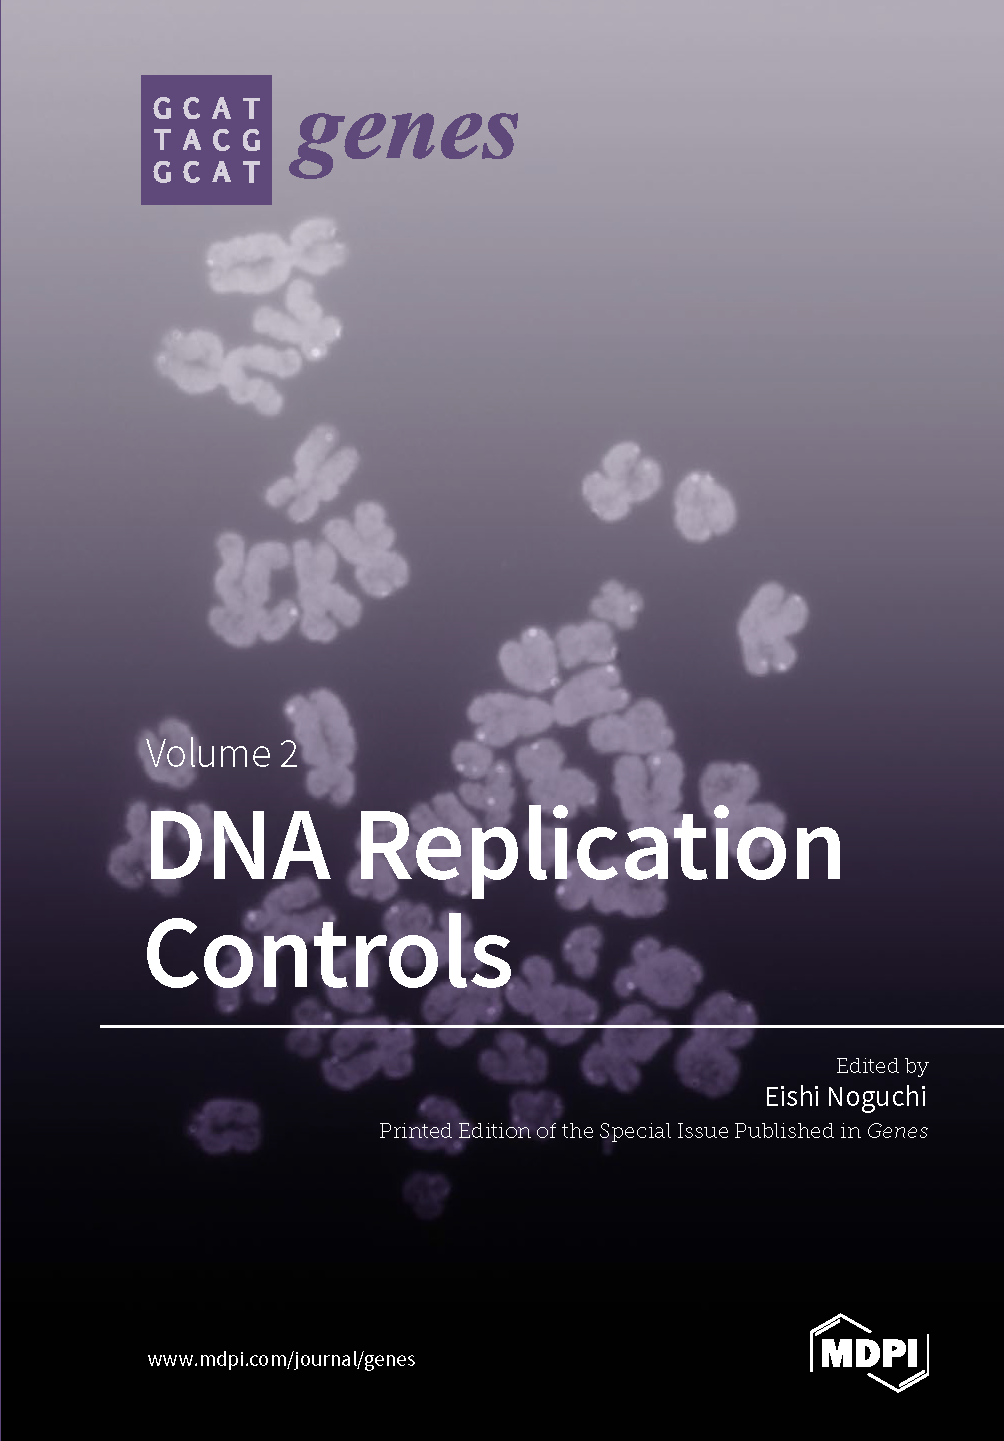 DNA Replication Controls Volume 2